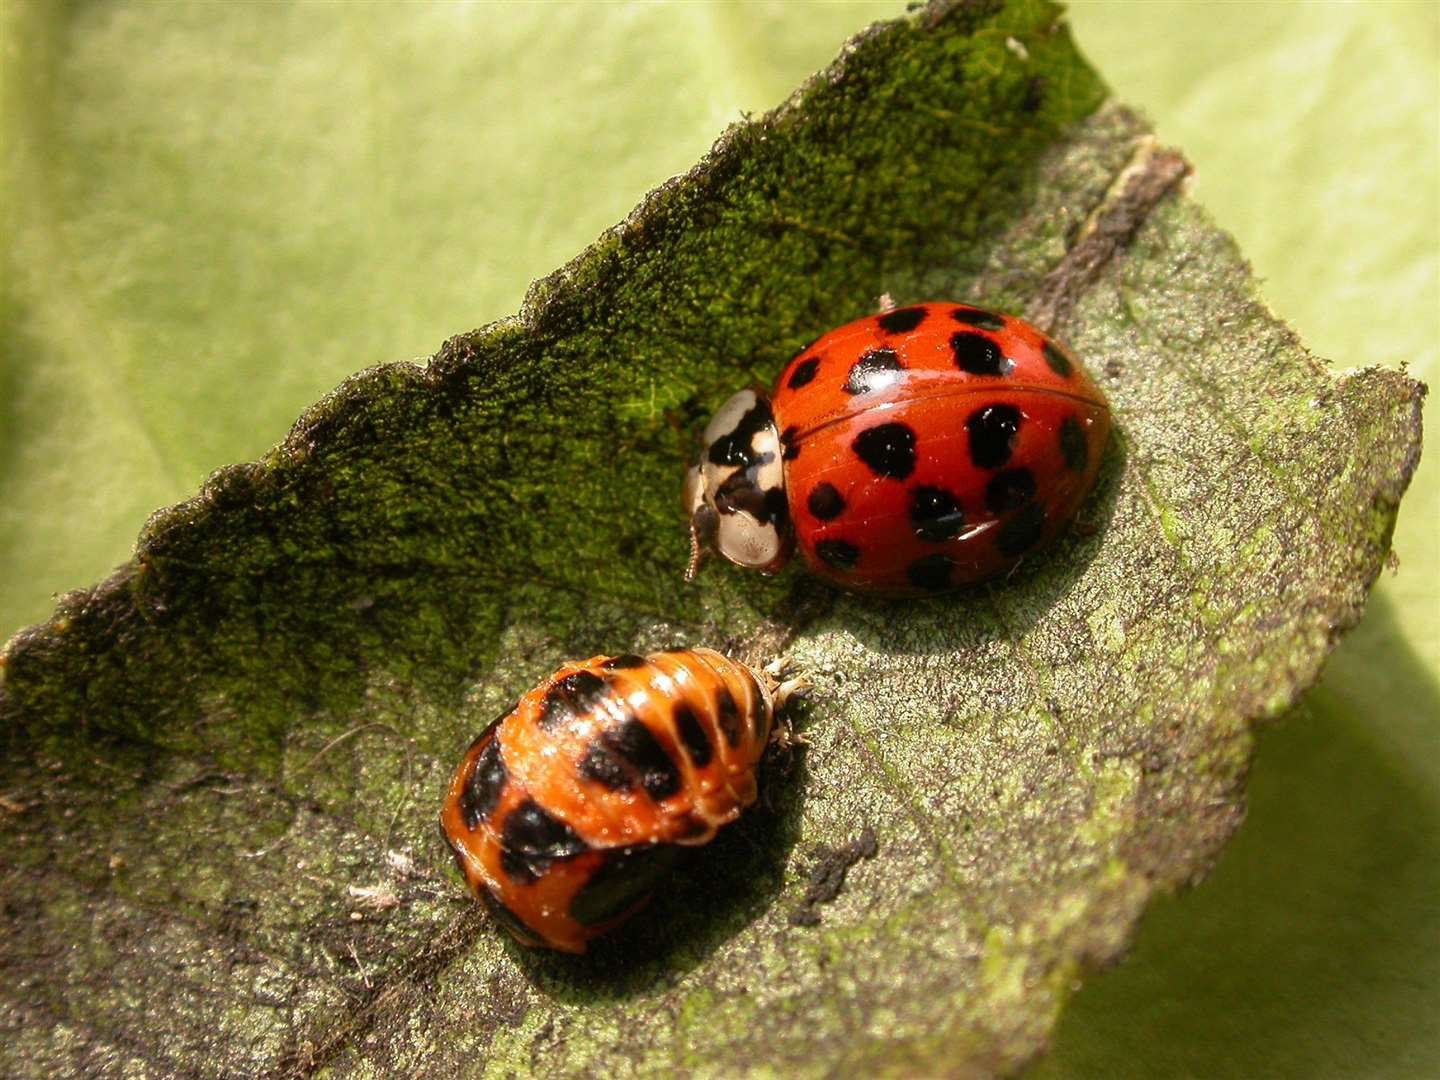 Harlequin ladybird next to a pupa. Credit: Philip Precey.